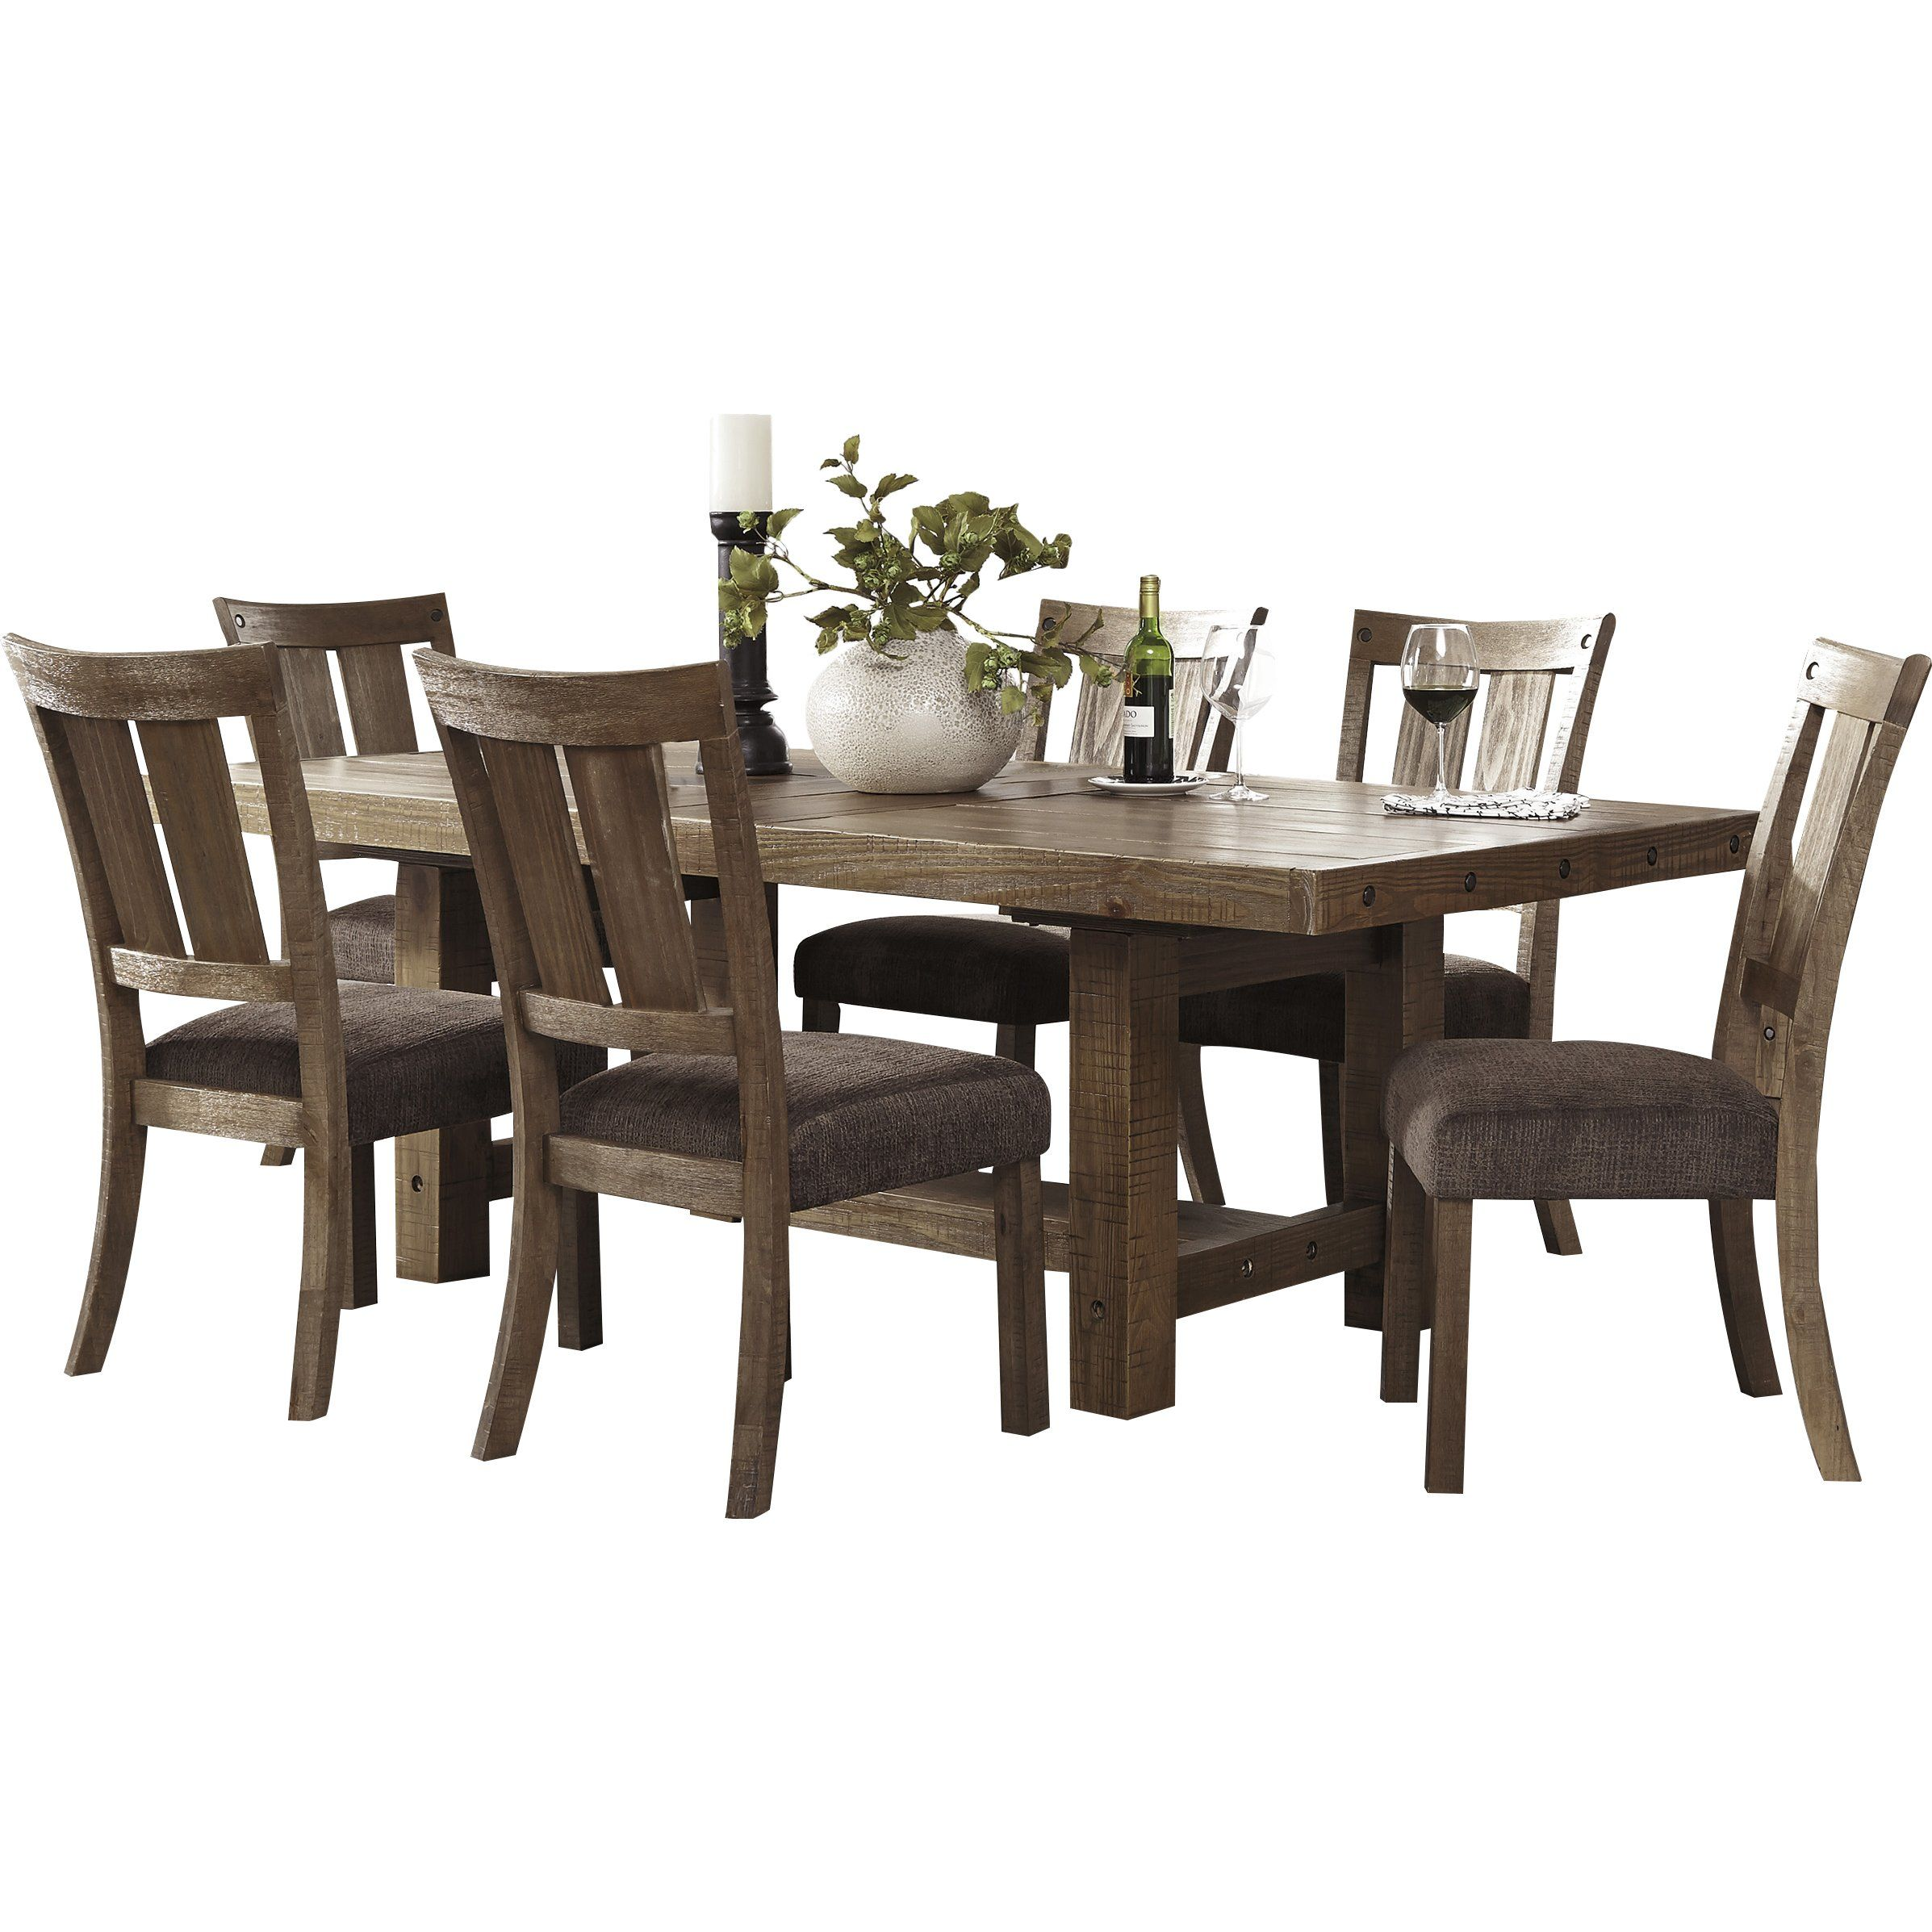 Loon Peak Reg Etolin Counter Height Extendable Dining Table Dining Table In Kitchen Dining Table Traditional Dining Tables